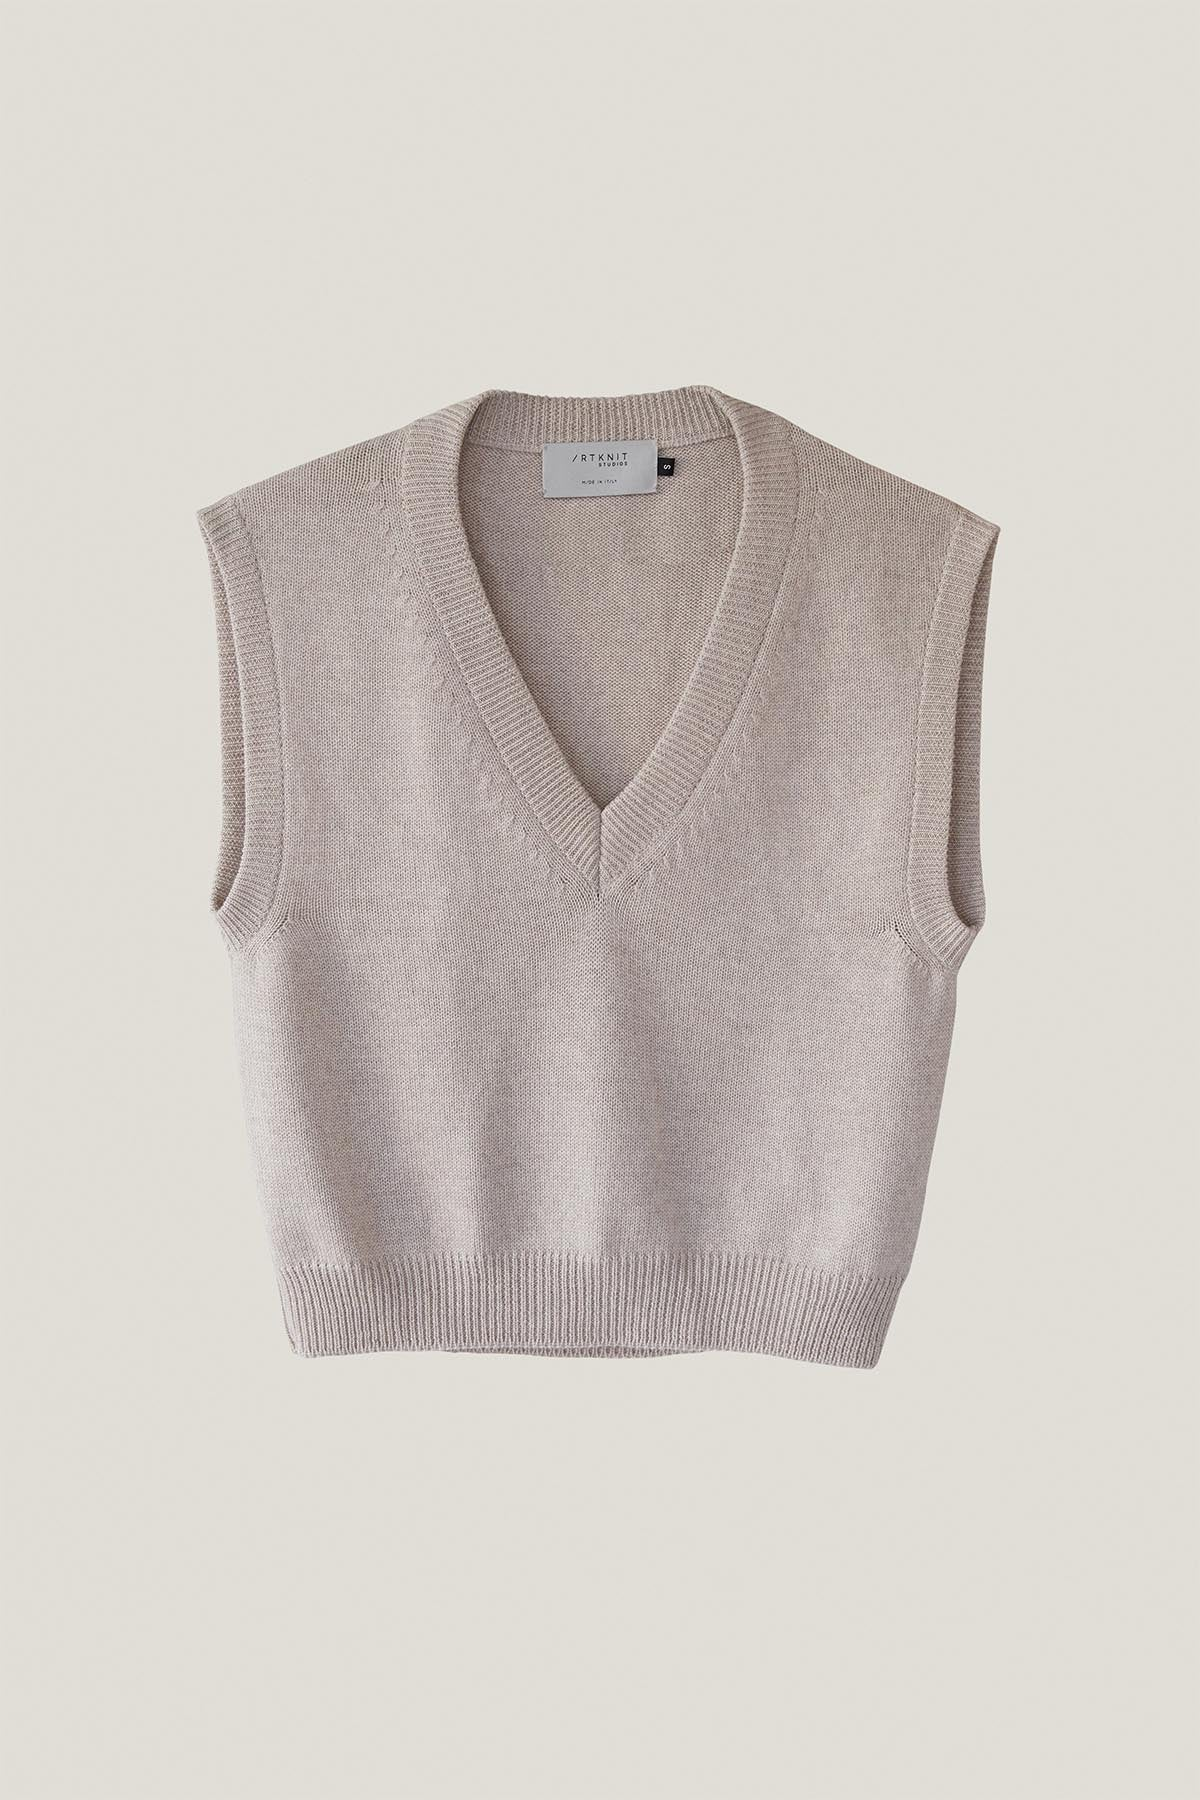 The Merino Wool Vest - Pearl